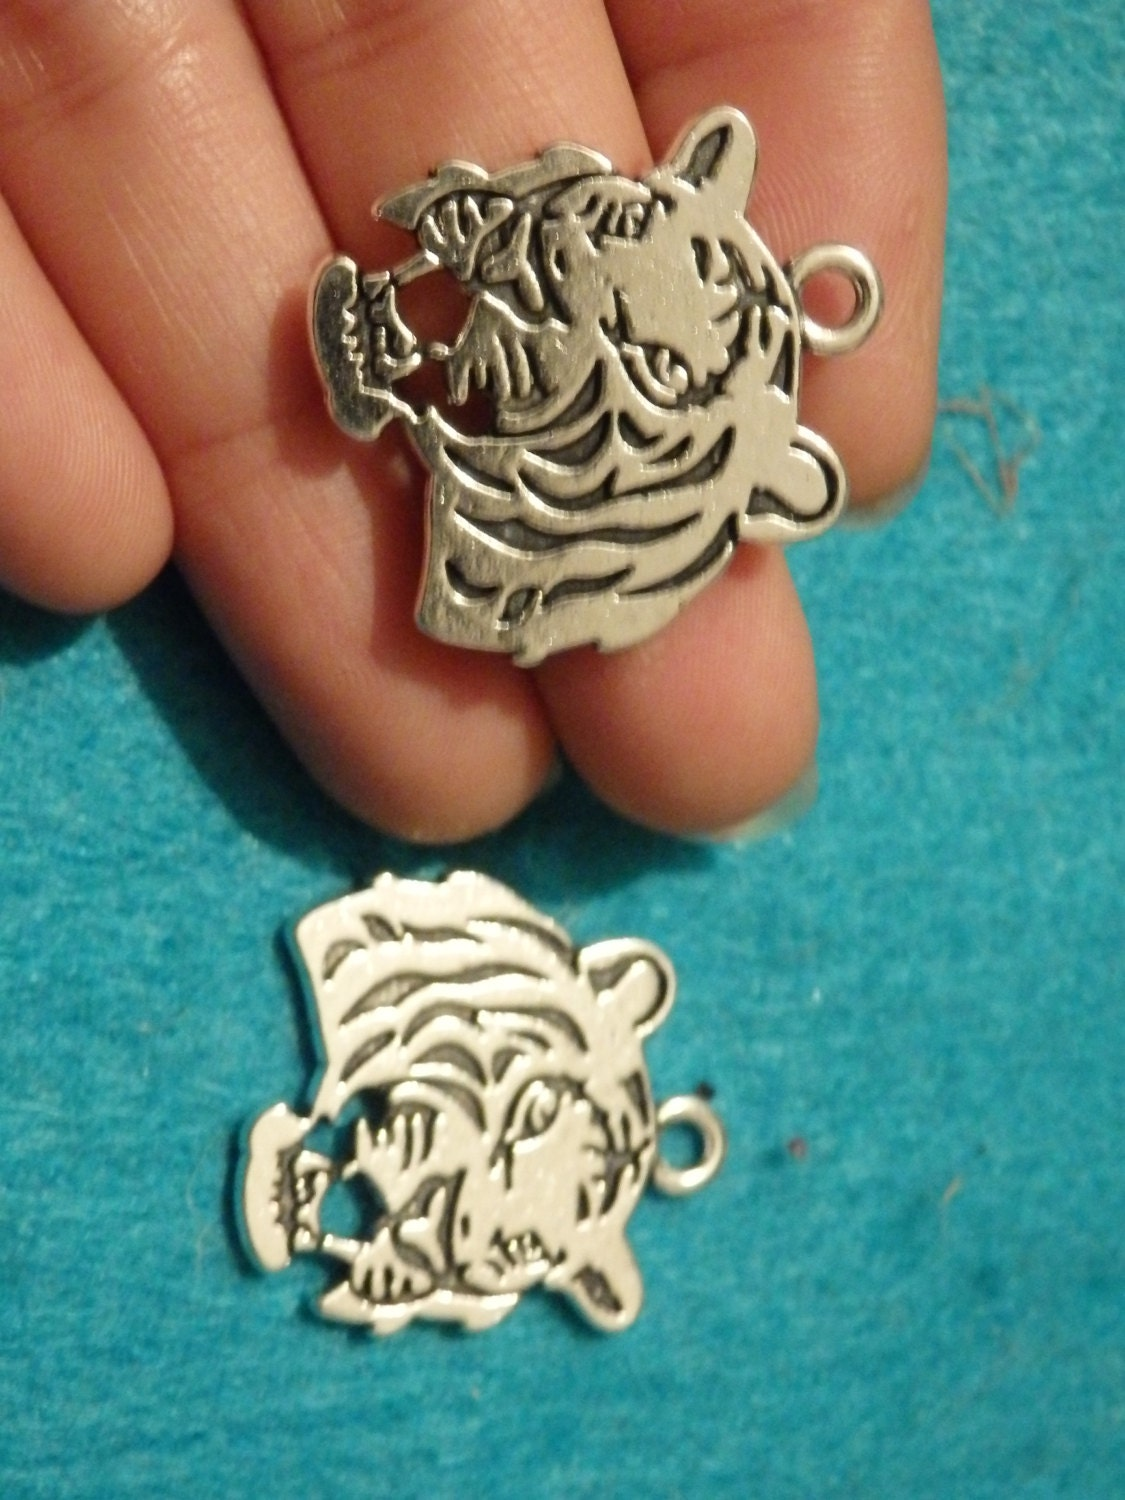 10 tiger head charms pendants antique silver jewellery making wholesale UK vintage